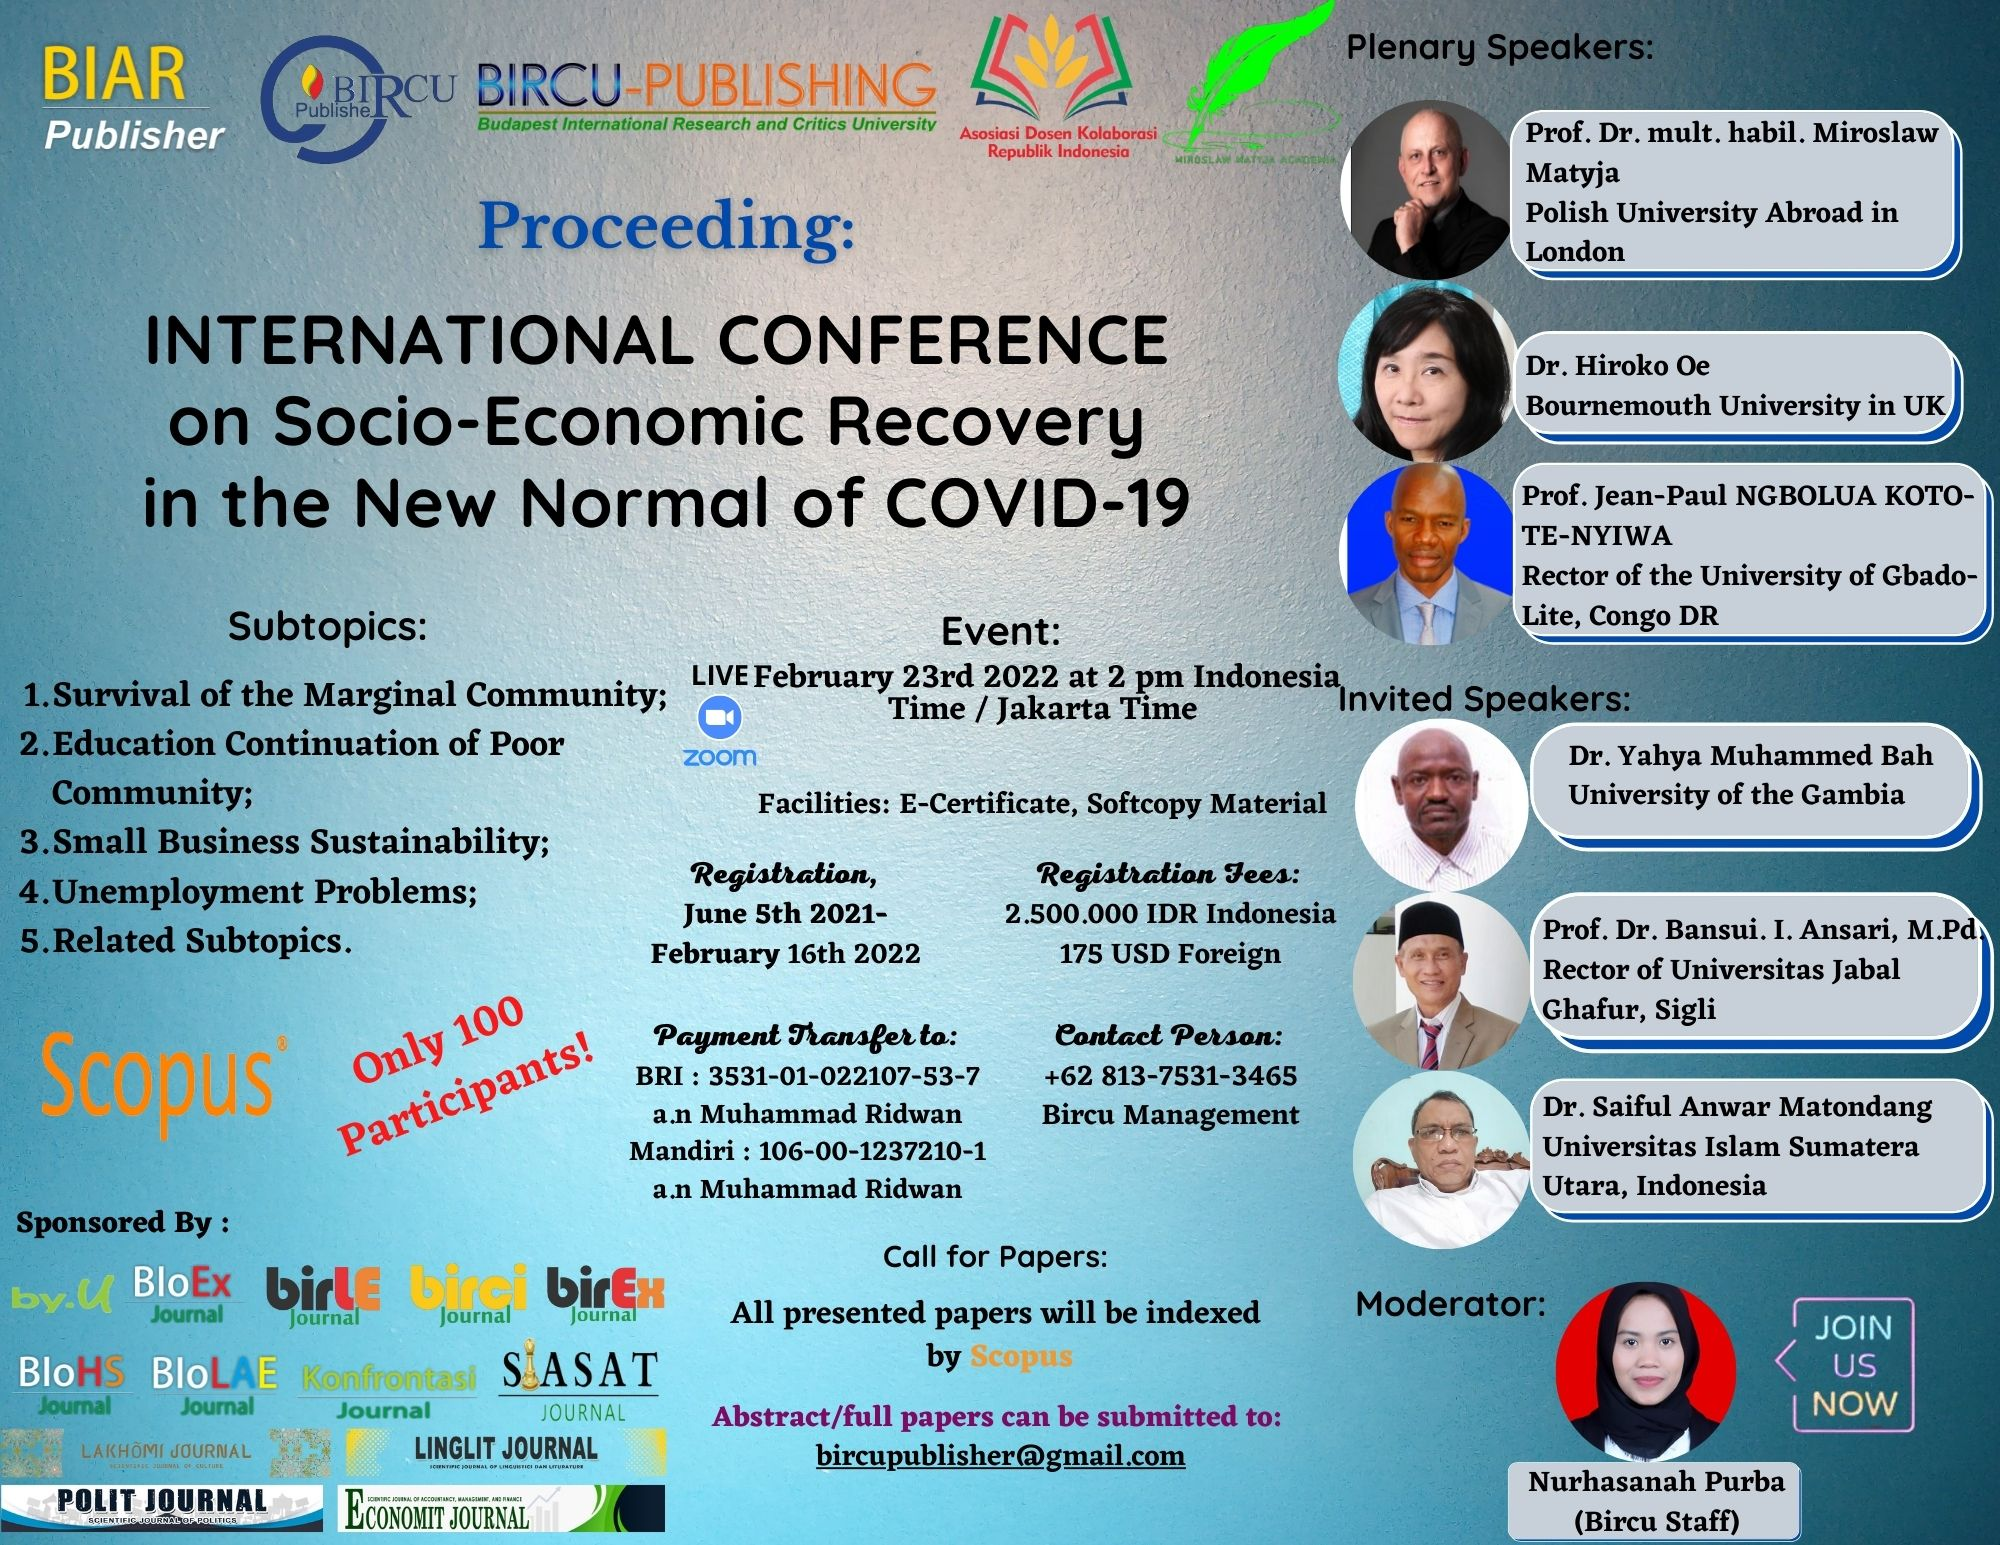 INTERNATIONAL CONFERENCE on Socio-Economic Recovery in the New Normal of COVID 19 (8)